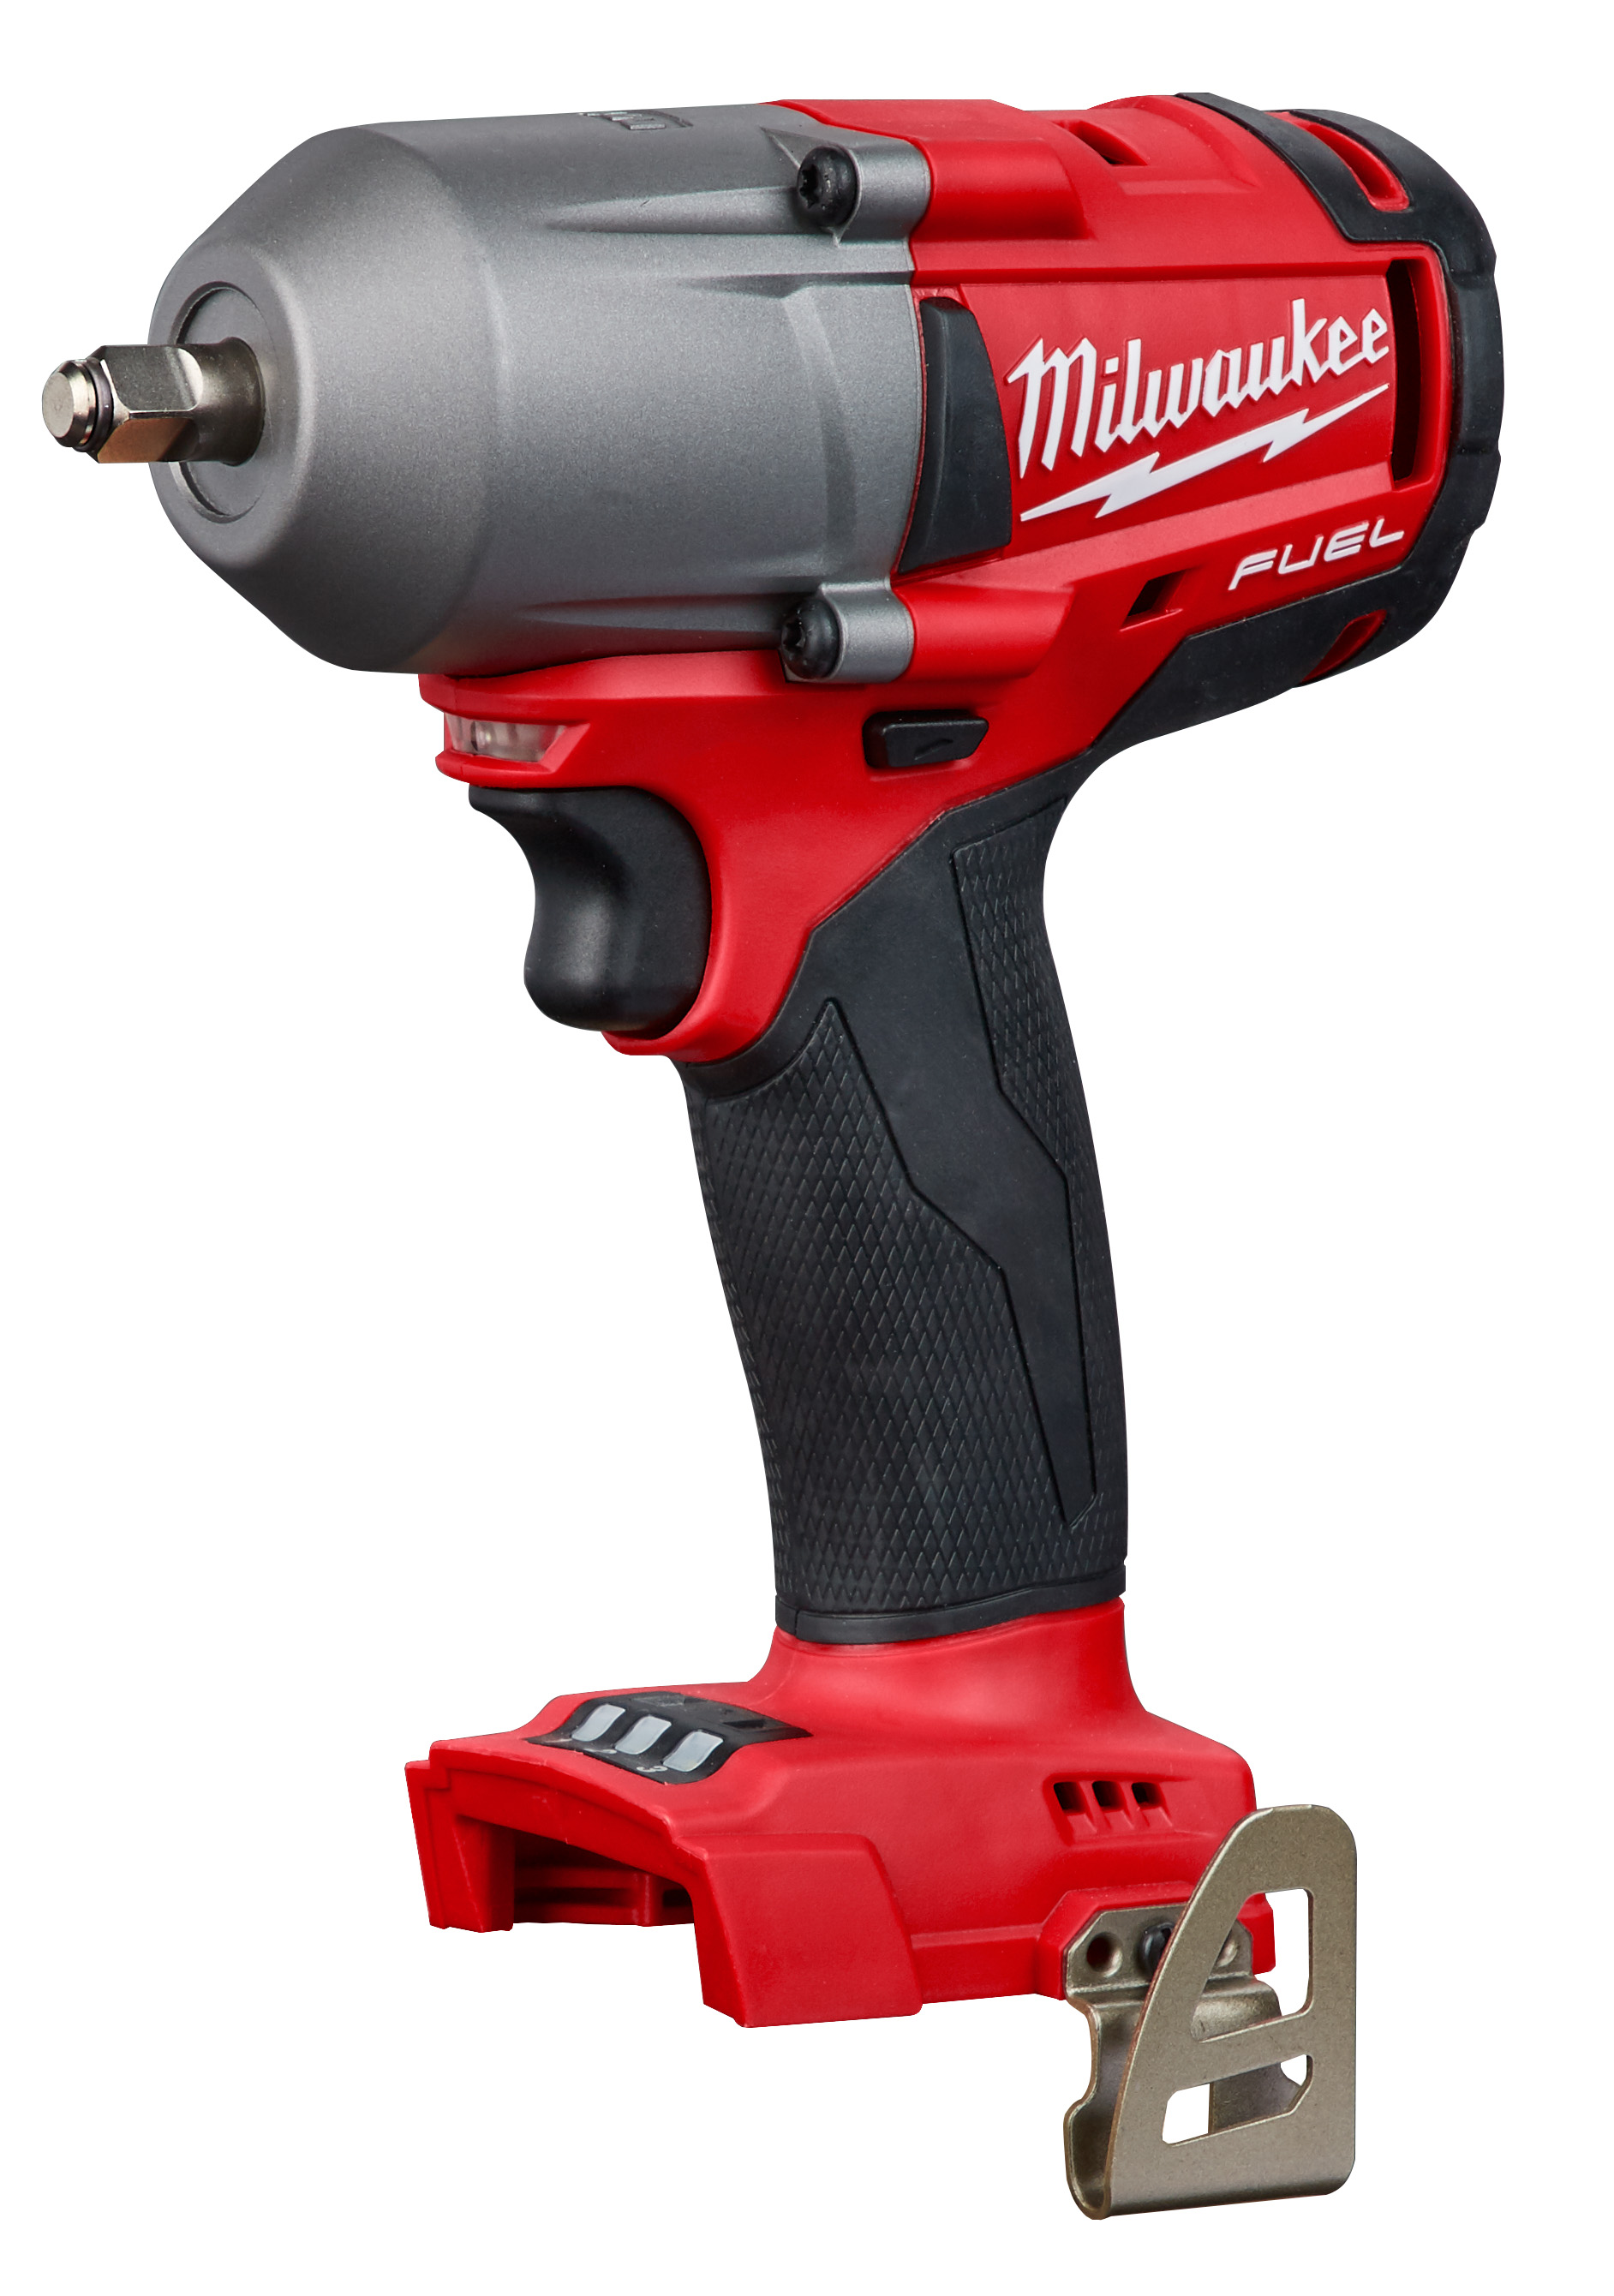 Milwaukee® M18™ 2852-20 Mid Torque Cordless Impact Wrench With Friction Ring, 3/8 in, 600 ft-lb Torque, 18 VDC, 6.7 in OAL